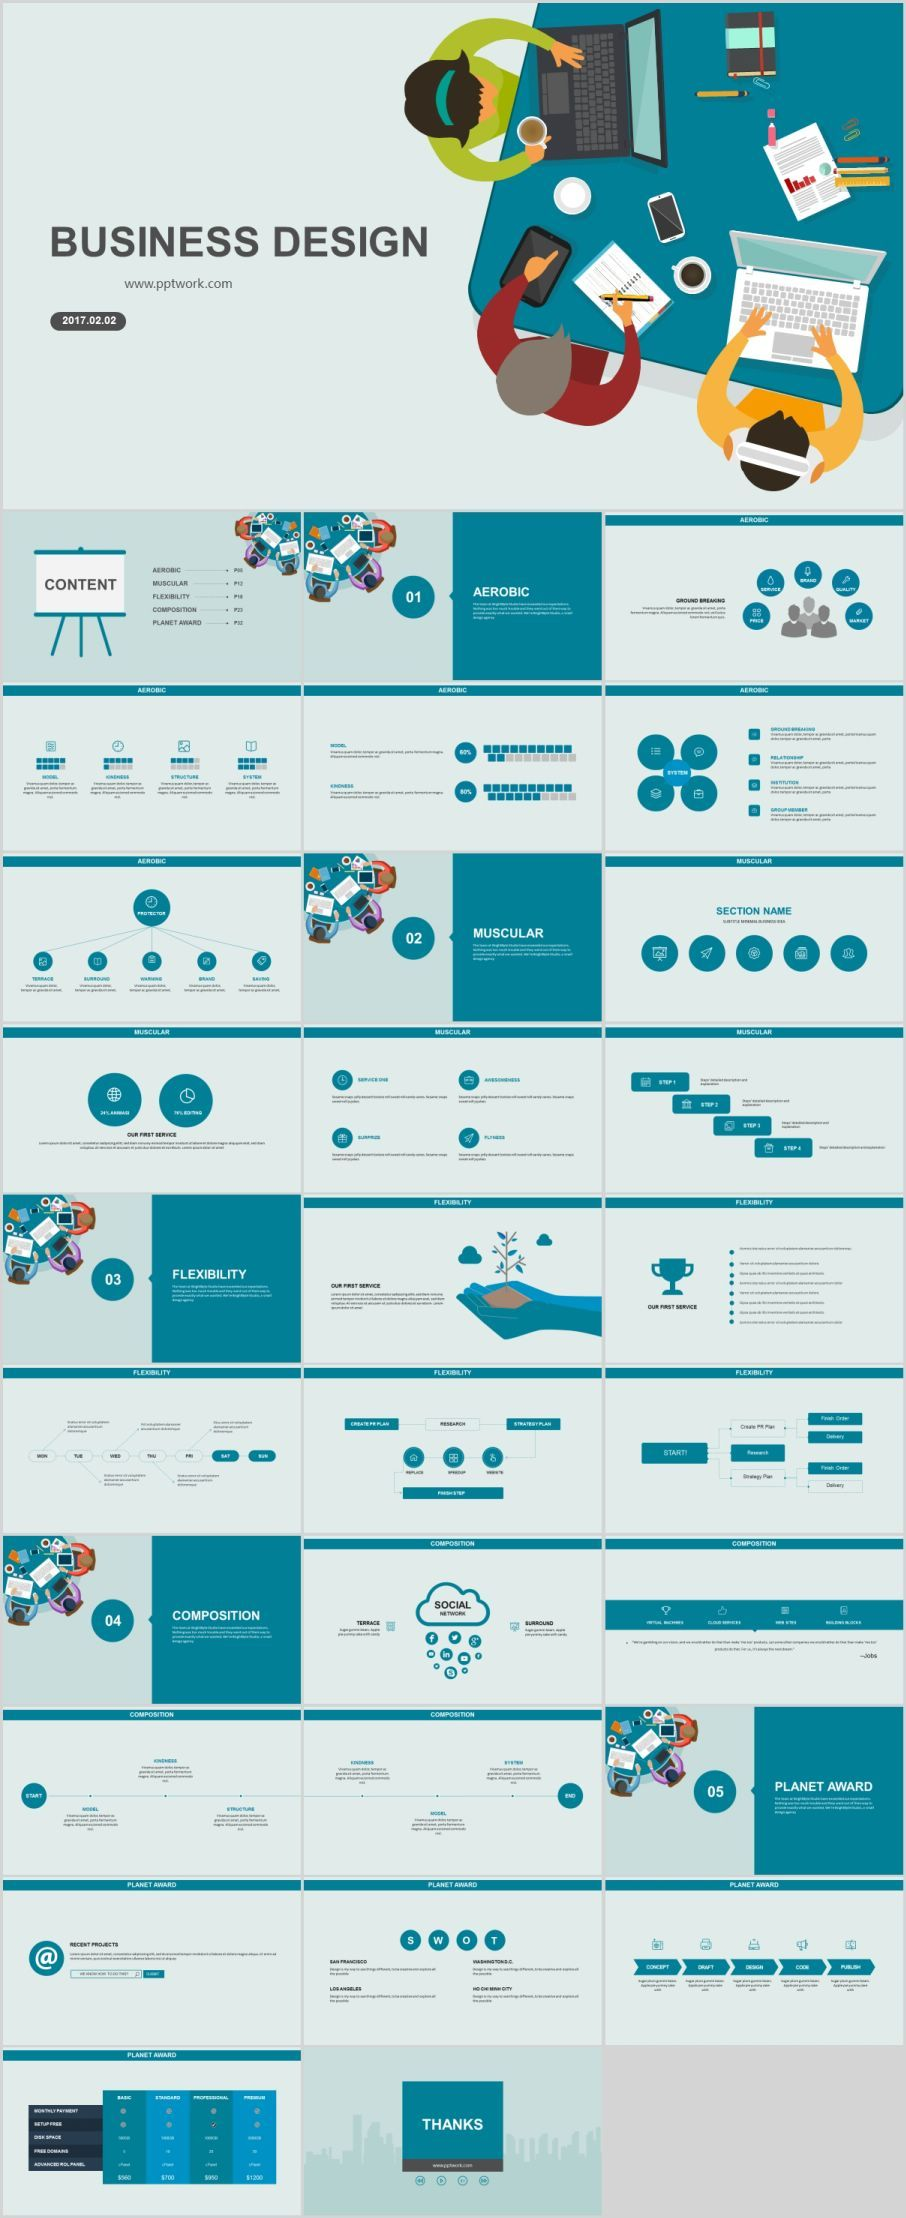 30 blue business design powerpoint templates プレゼンテーション